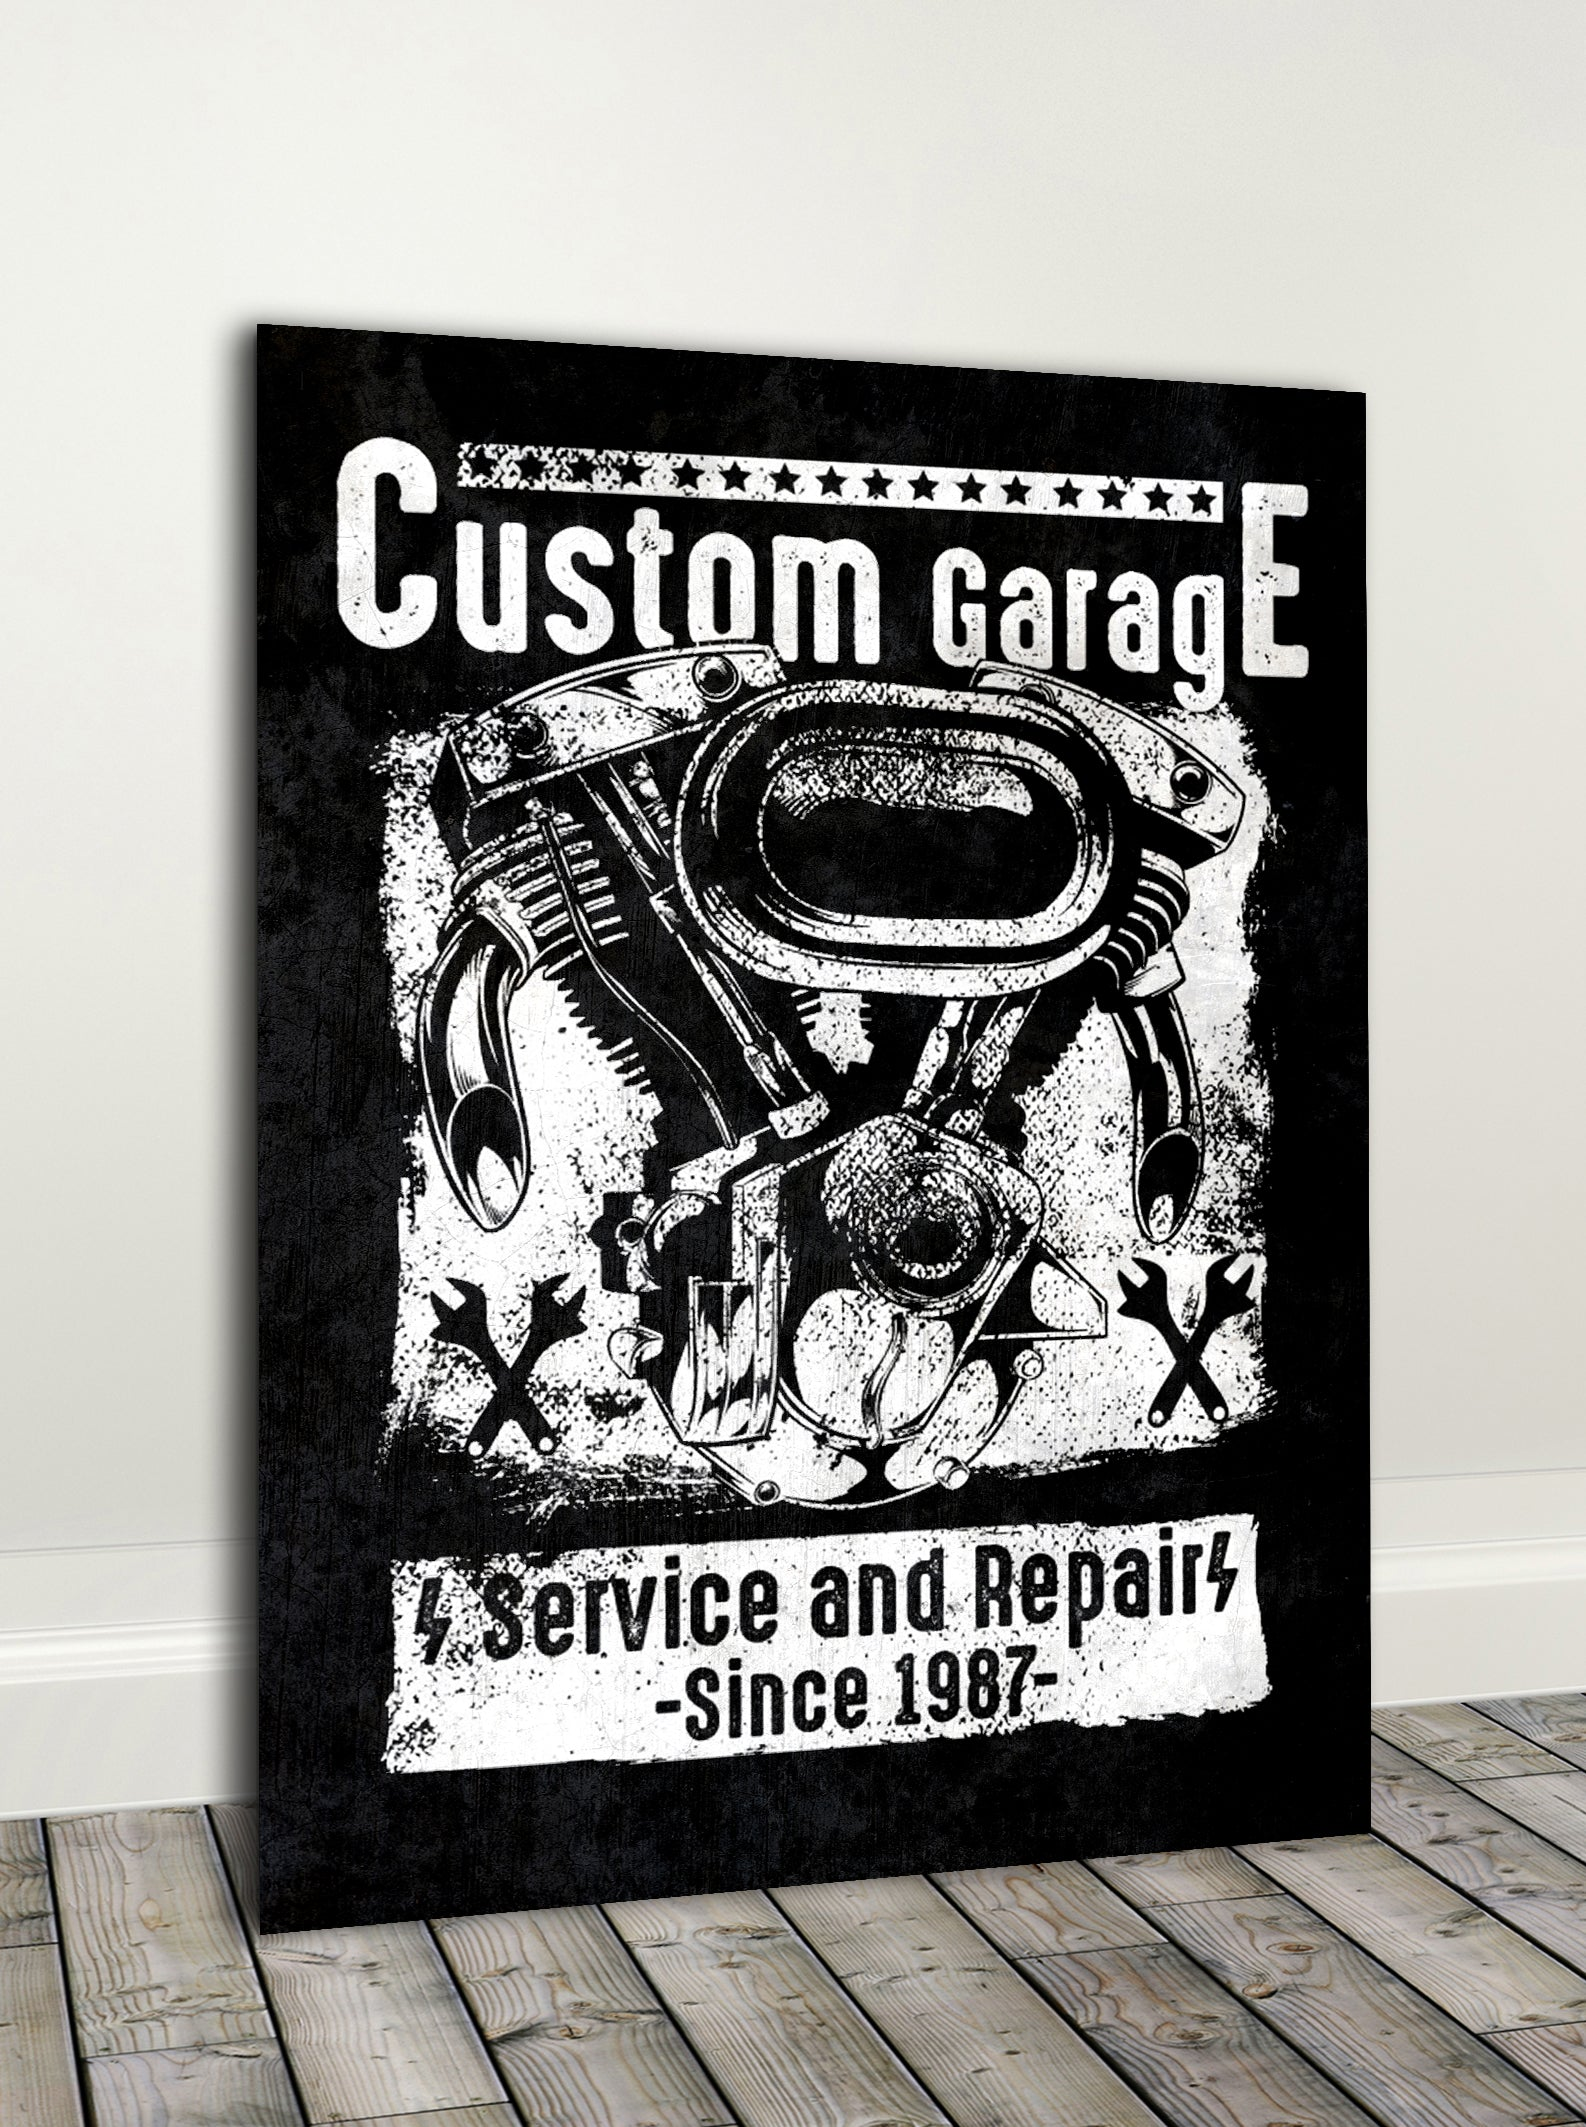 Biker Wall Art: Custom Garage (Wood Frame Ready To Hang)